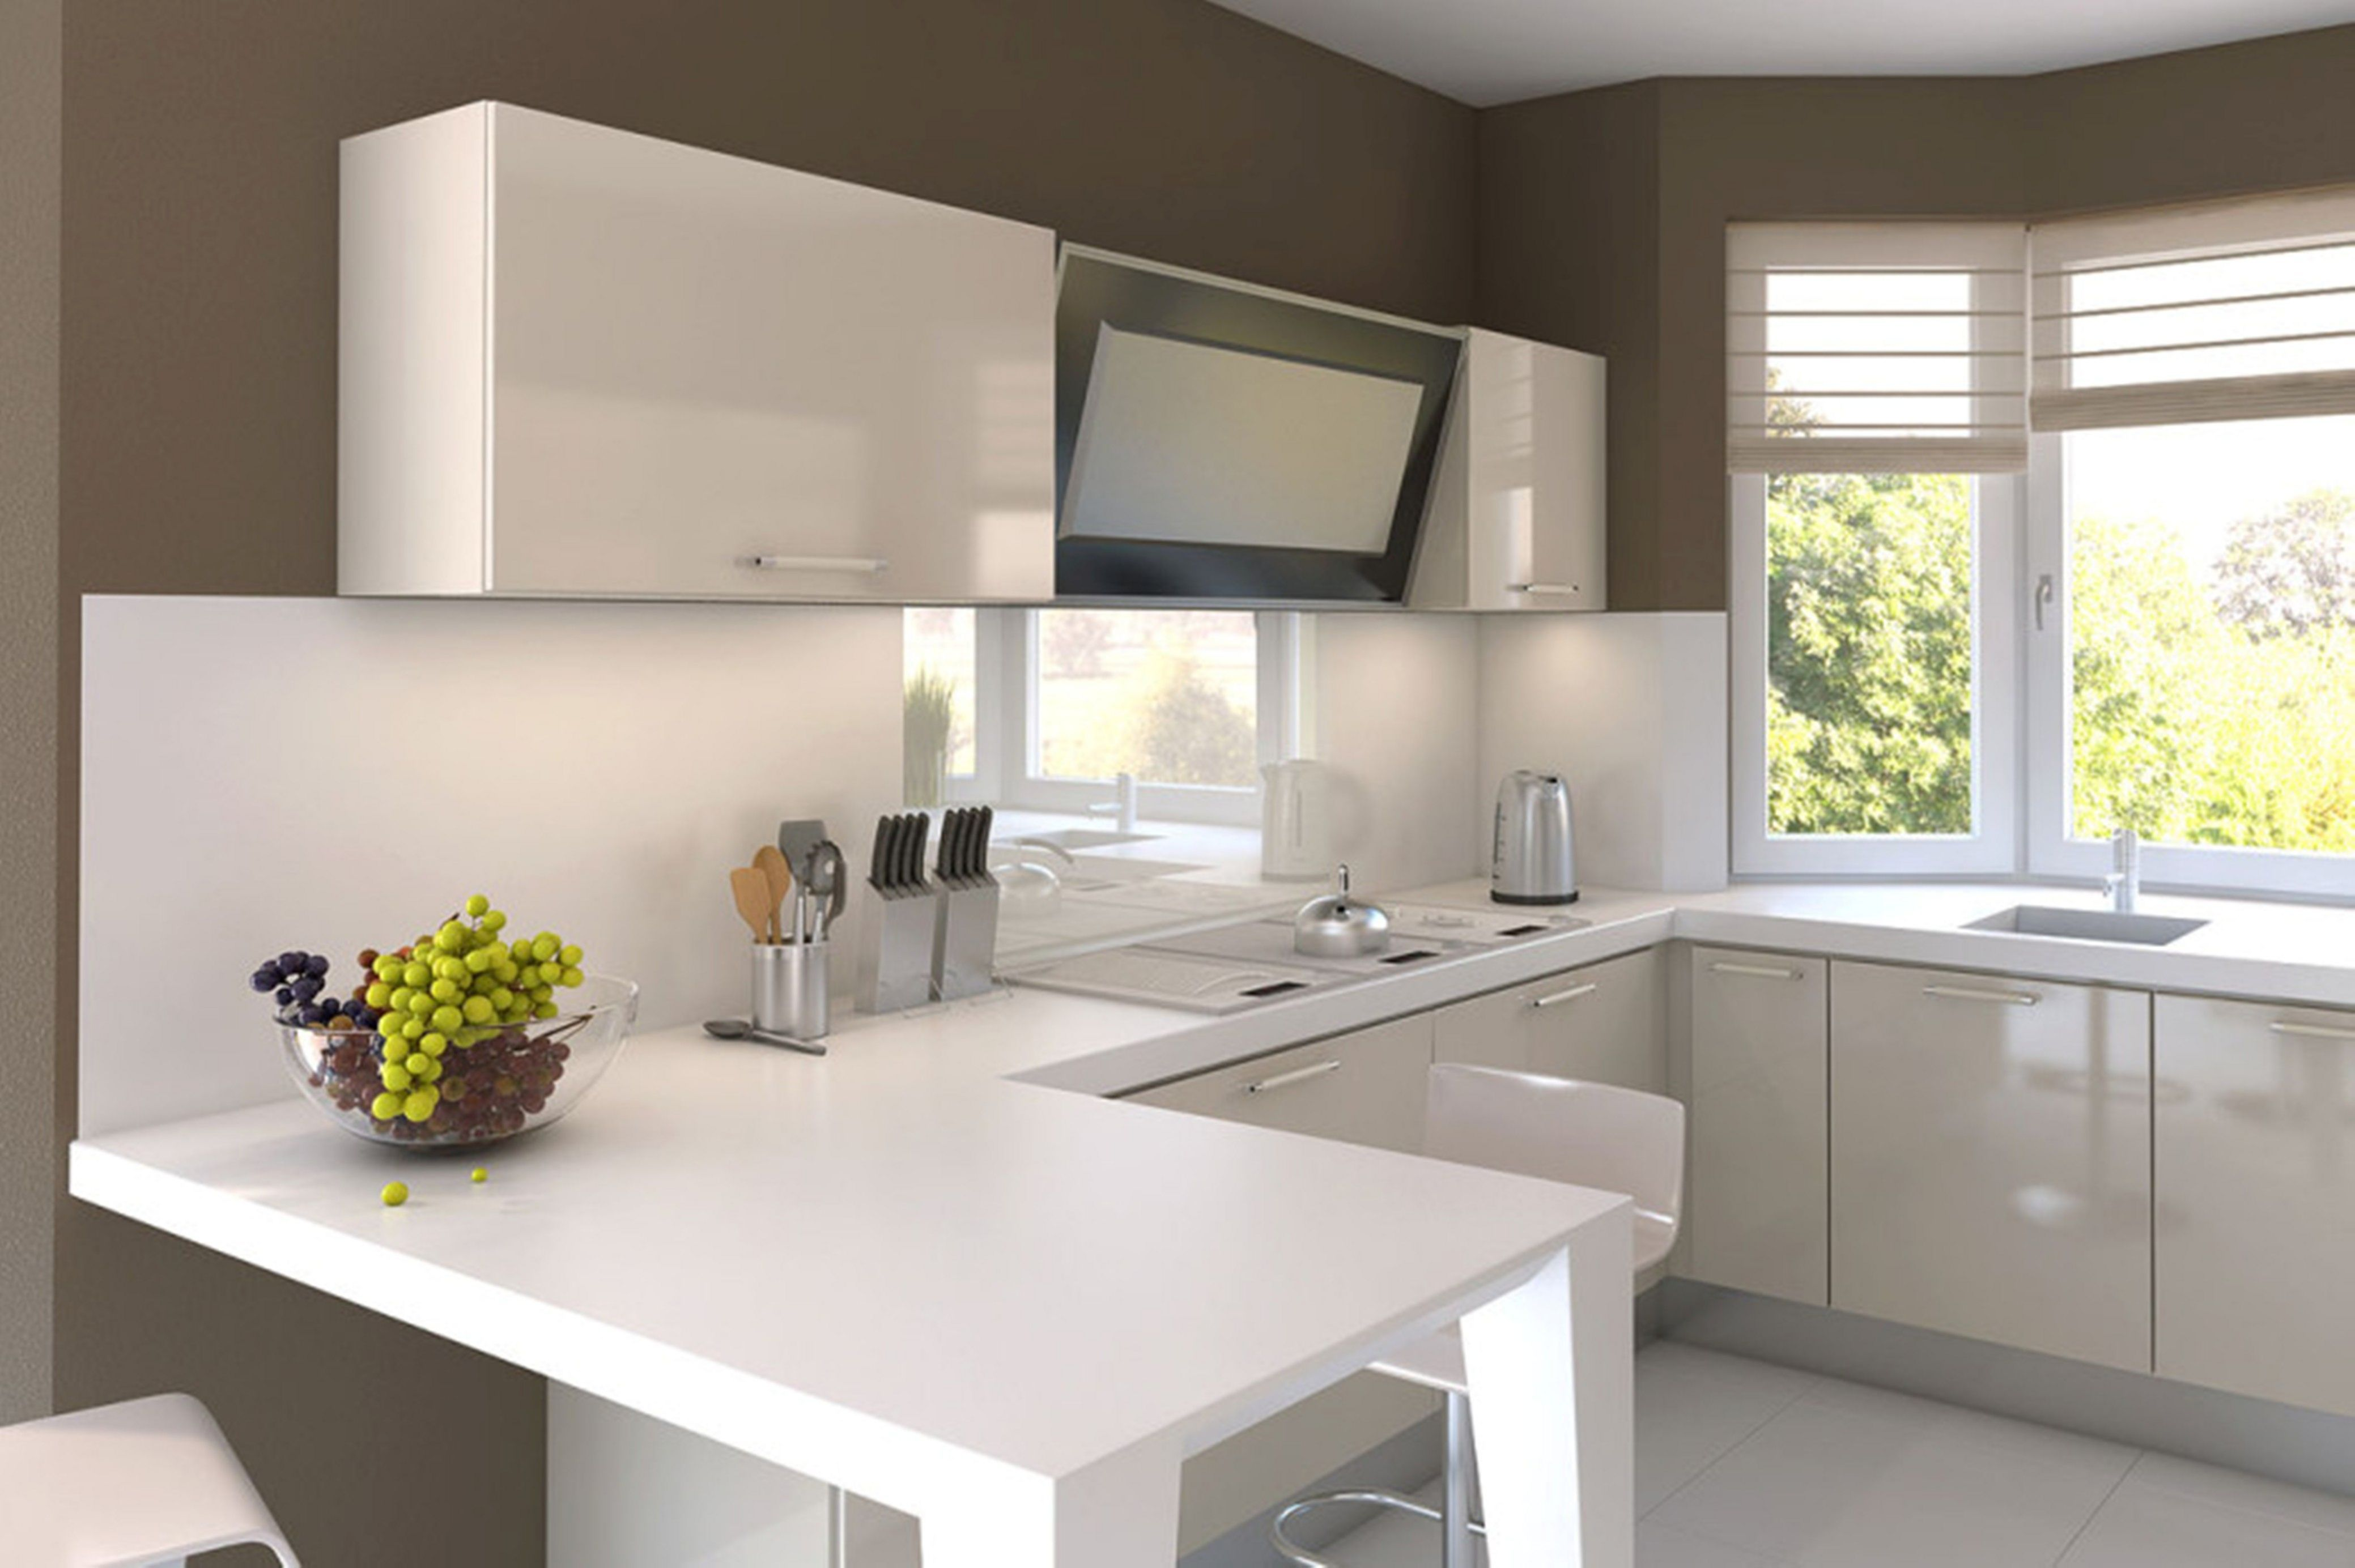 42 Best Renovation Ideas For Your Small Modern Kitchen On A Budget Decor It S Kitchen Design Small White Modern Kitchen Small Modern Kitchens